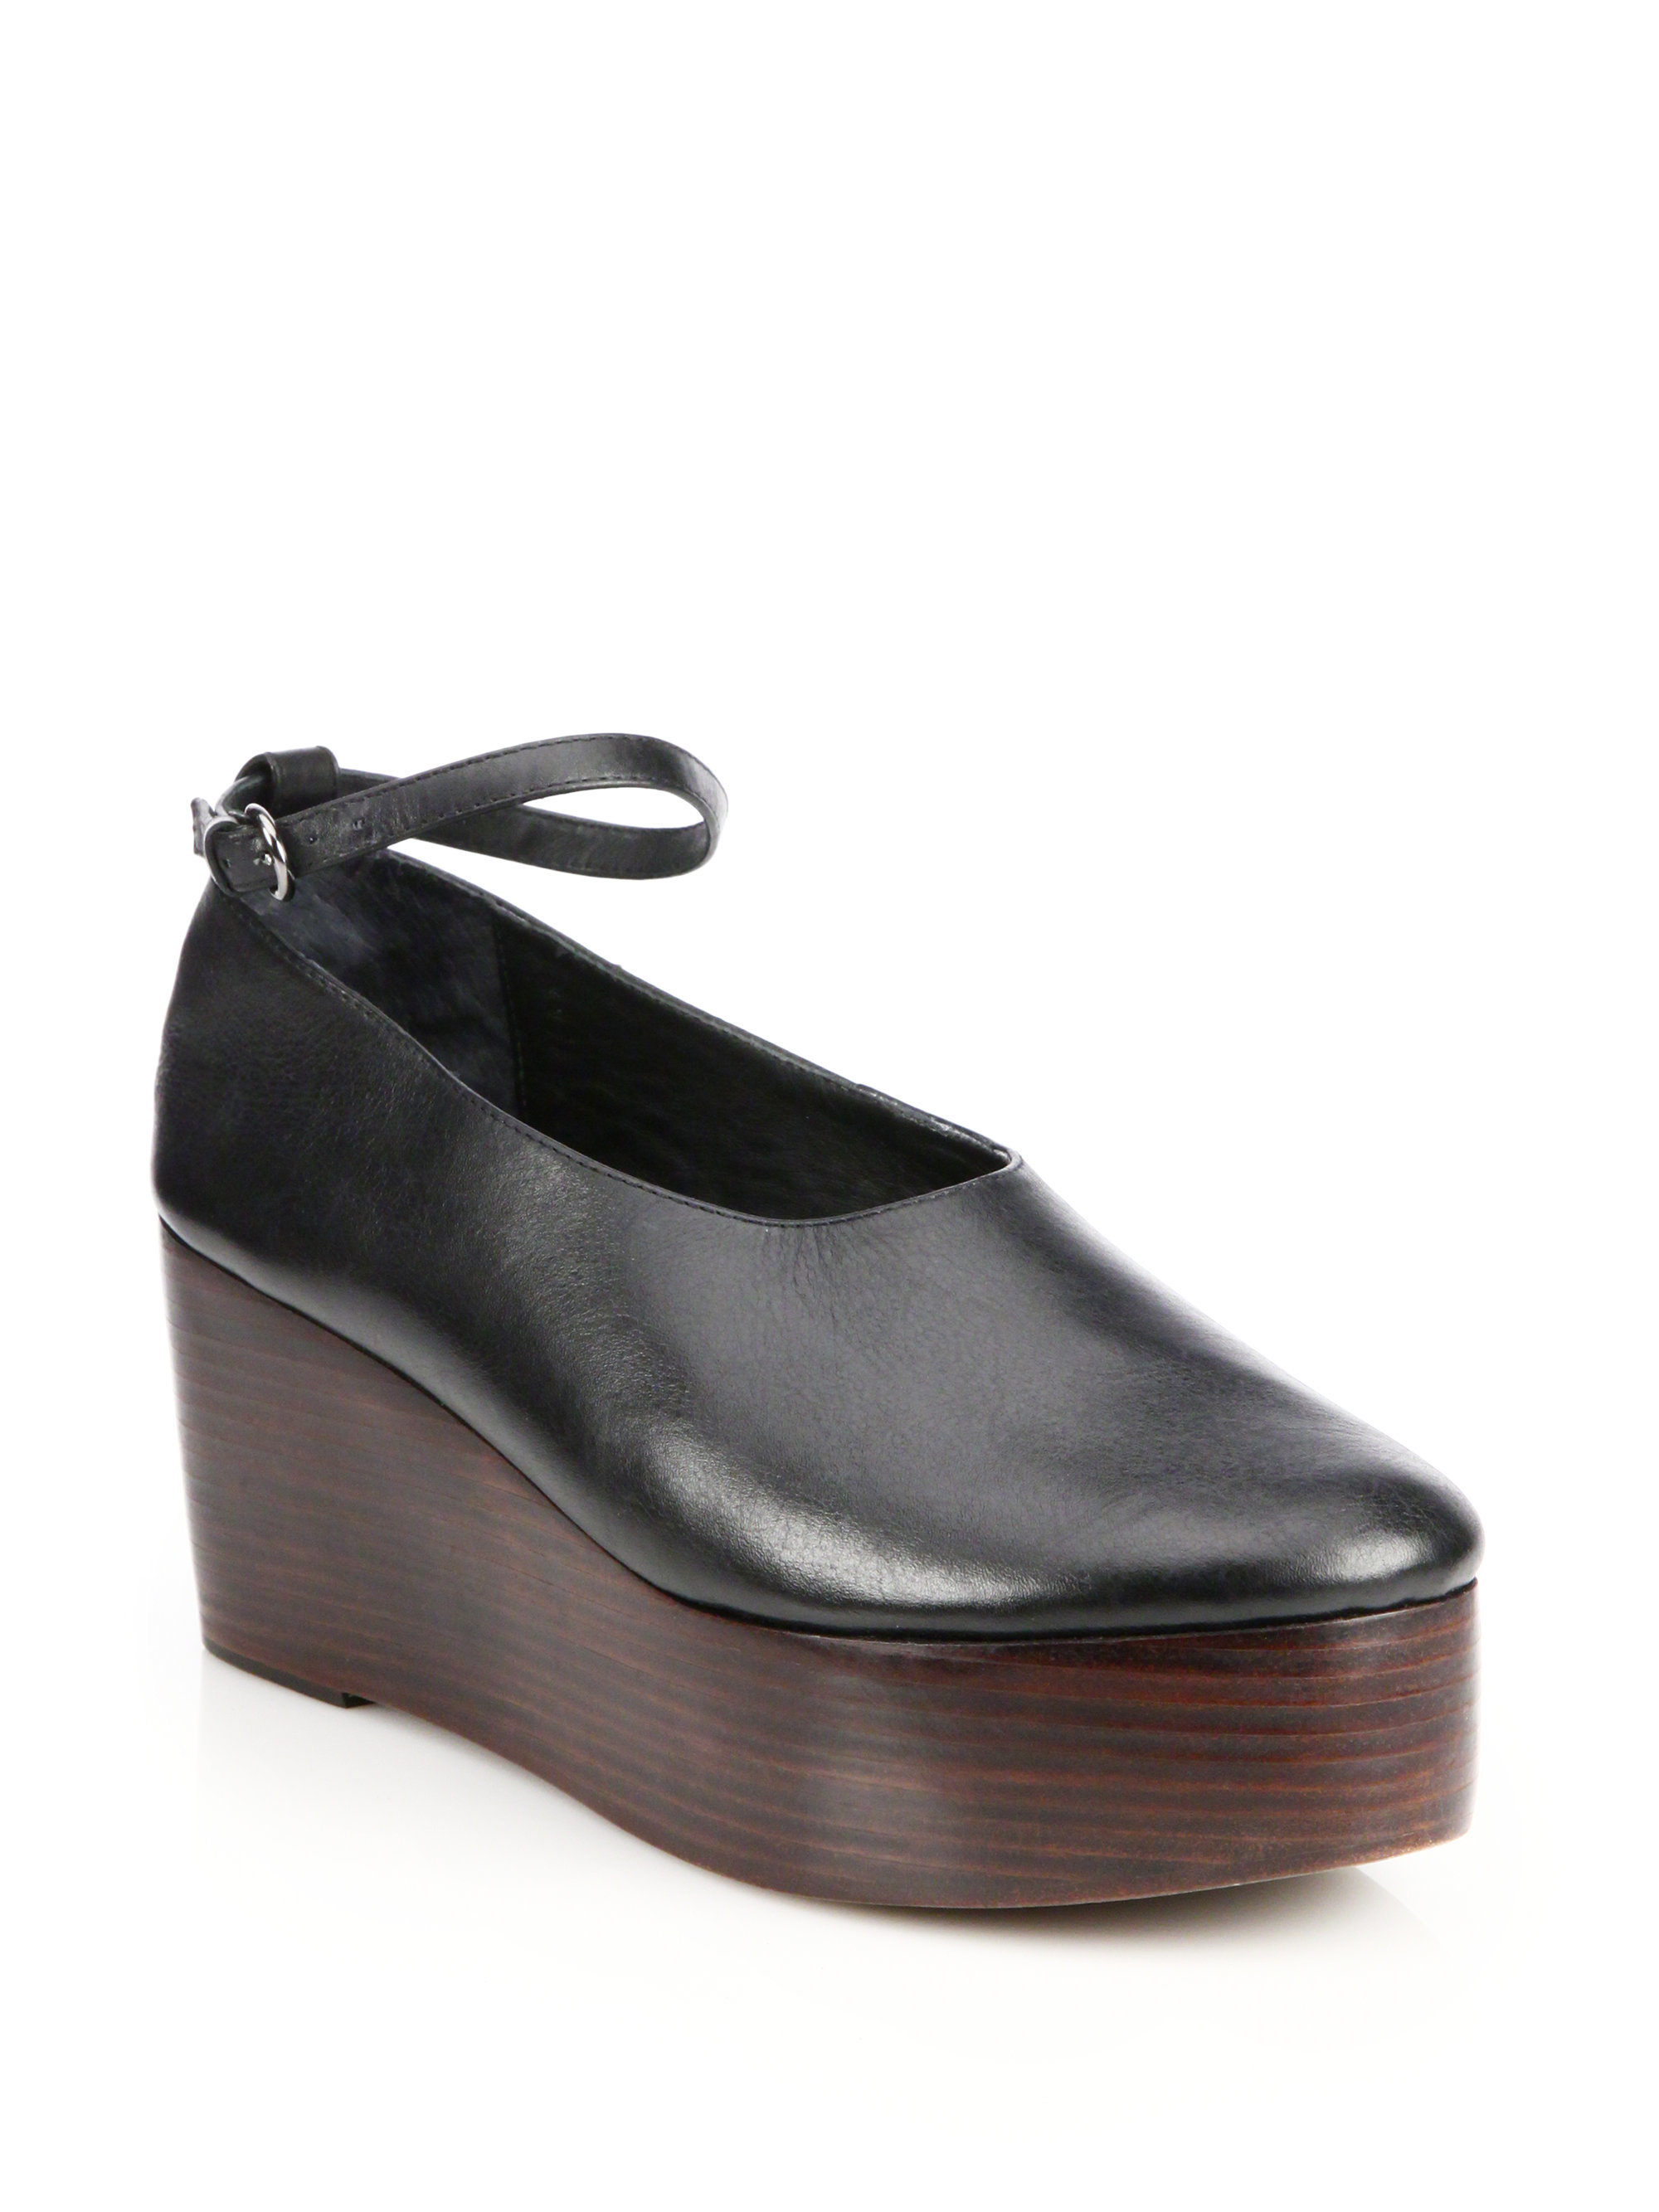 tibi jemma leather platform wedge shoes in black lyst